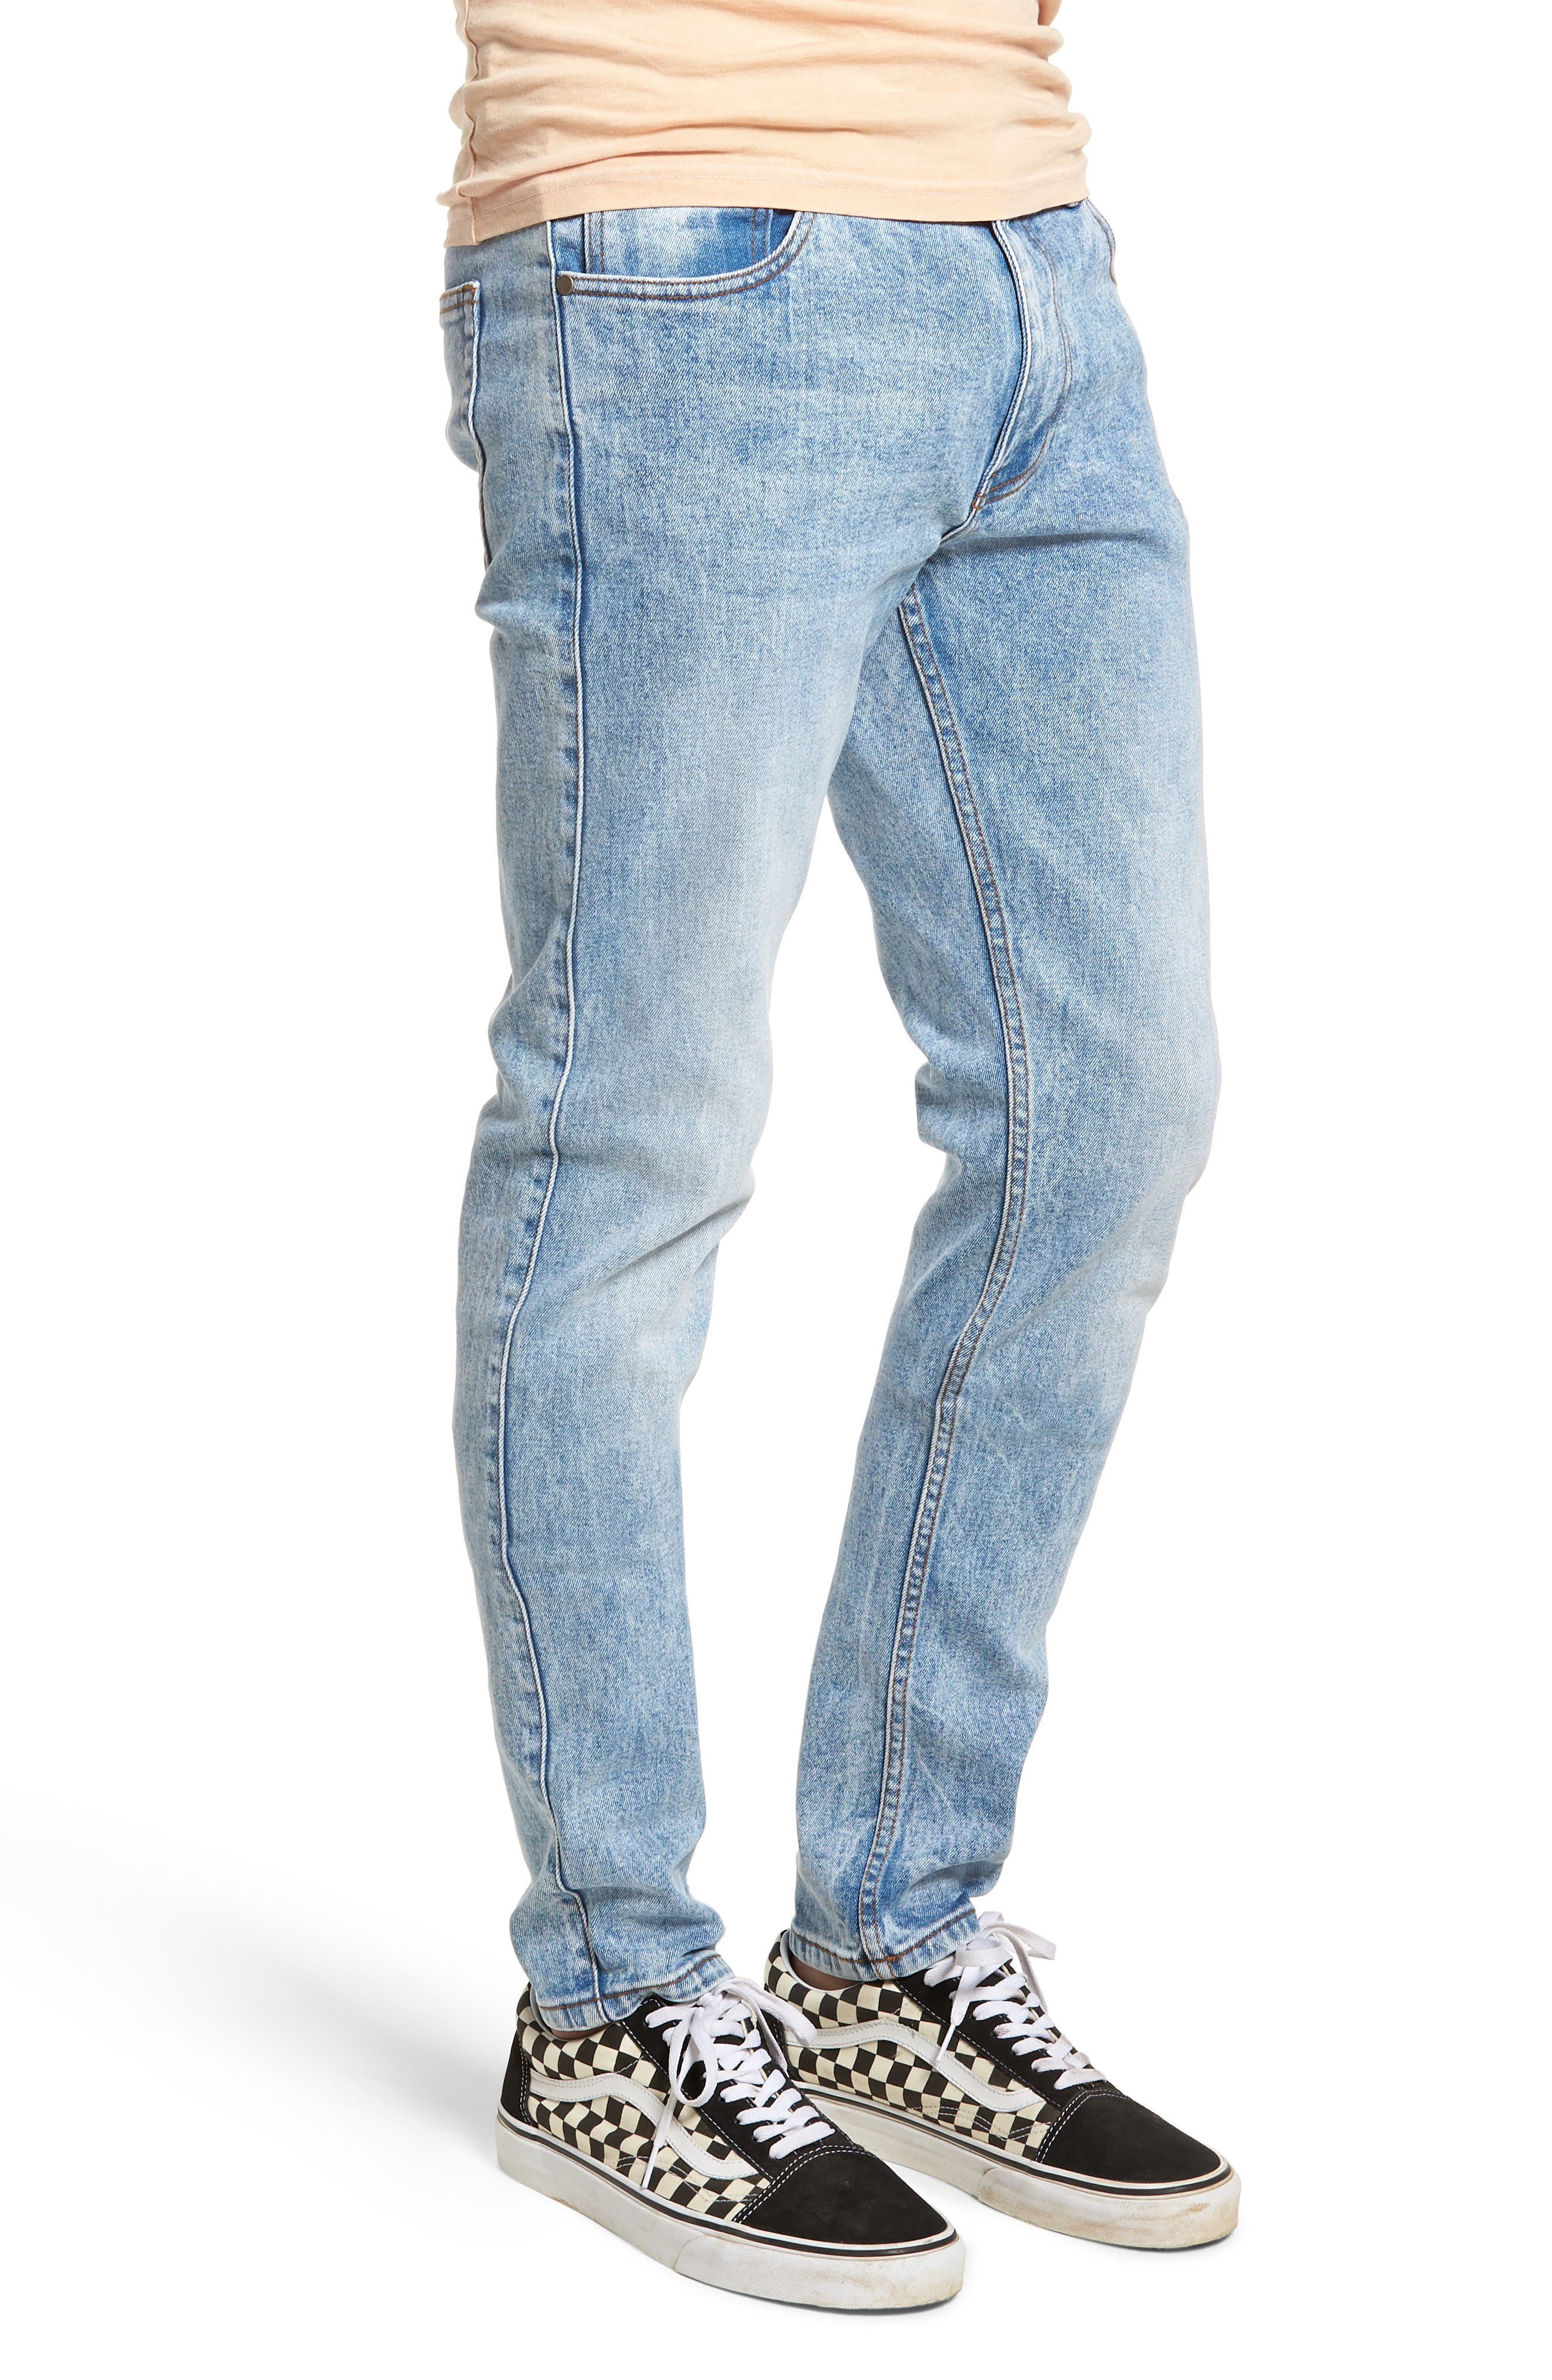 Clark Slim Straight Leg Jeans,                             Alternate thumbnail 3, color,                             Foggy Blue